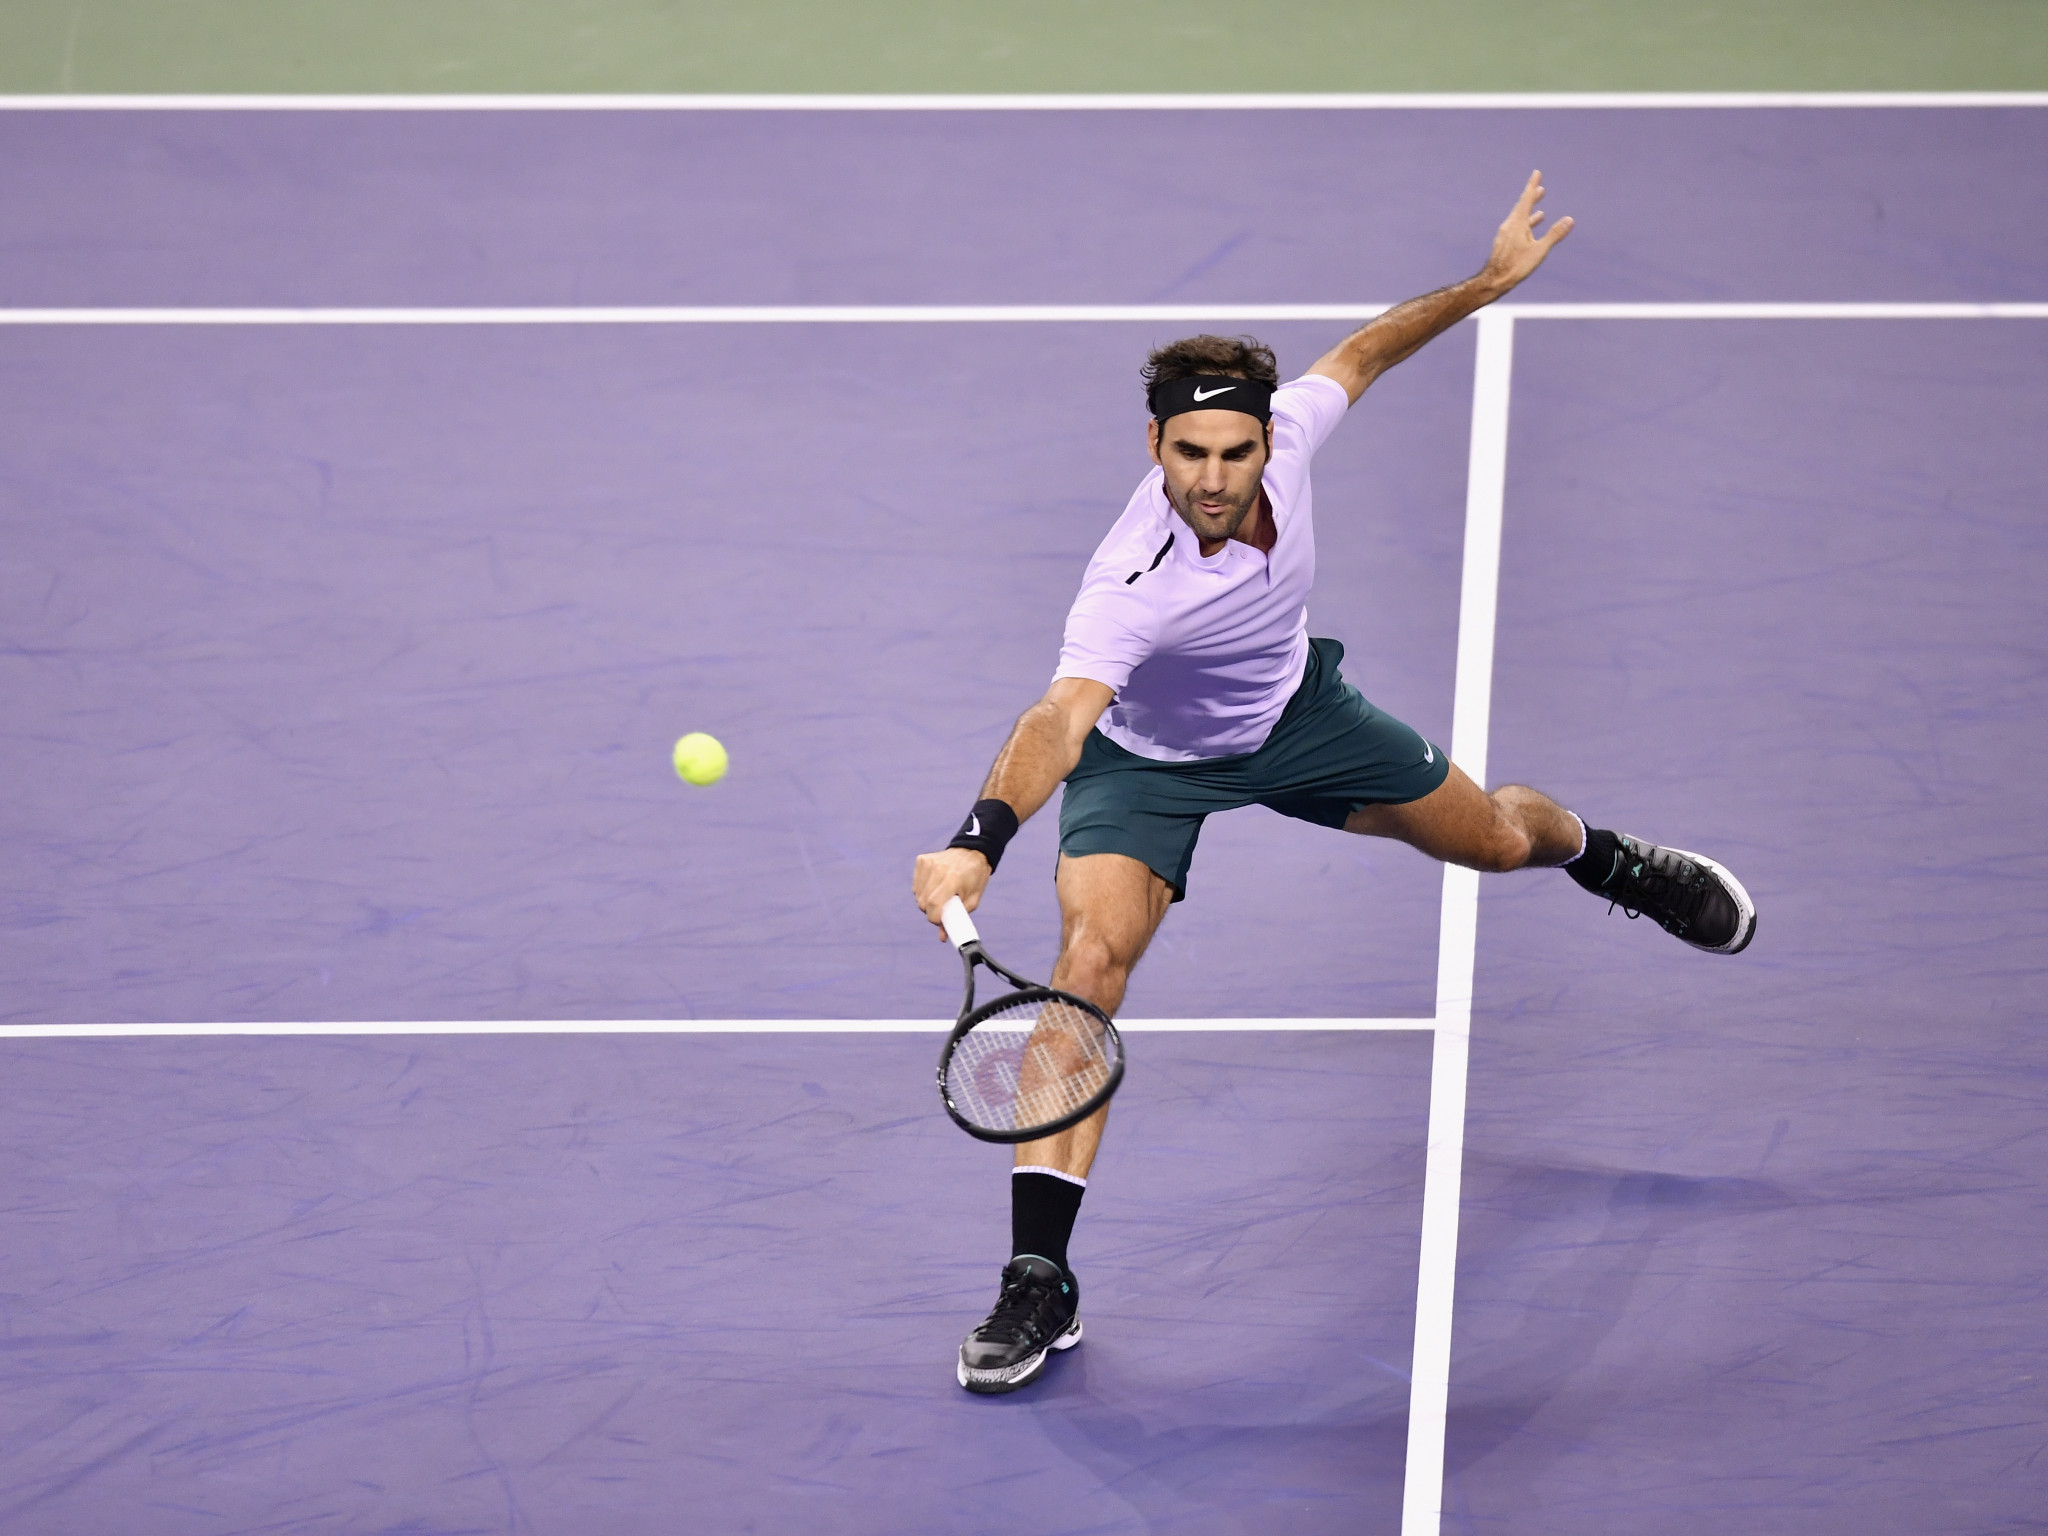 Roger Federer produced a superb display to beat Rafael Nadal and win the Shanghai Masters ©Getty Images